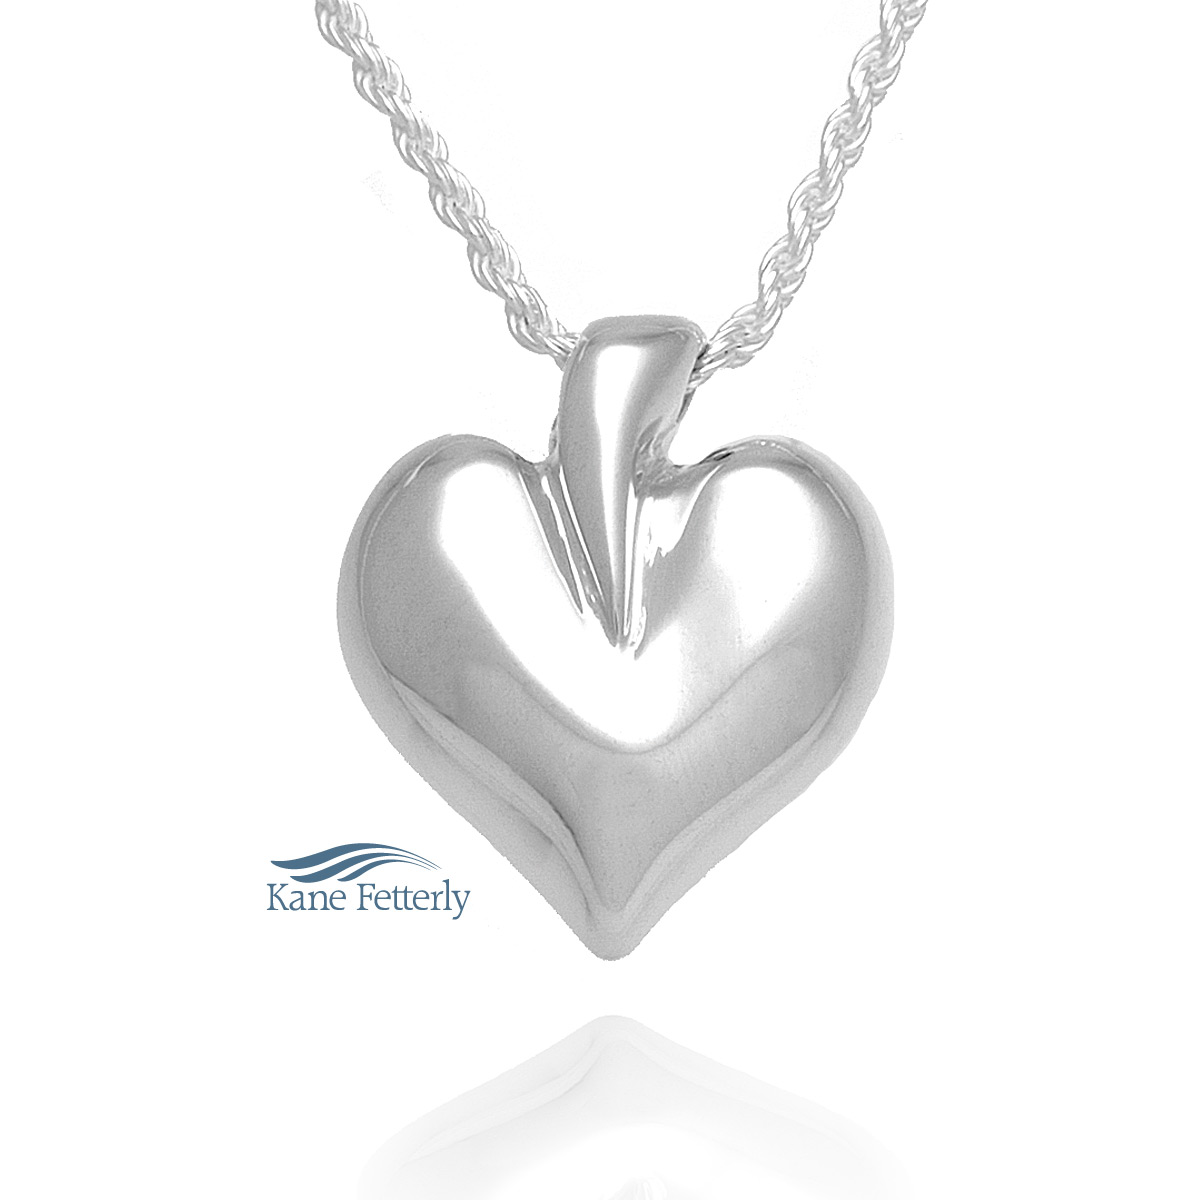 J0212 Heart pendant in sterling silver